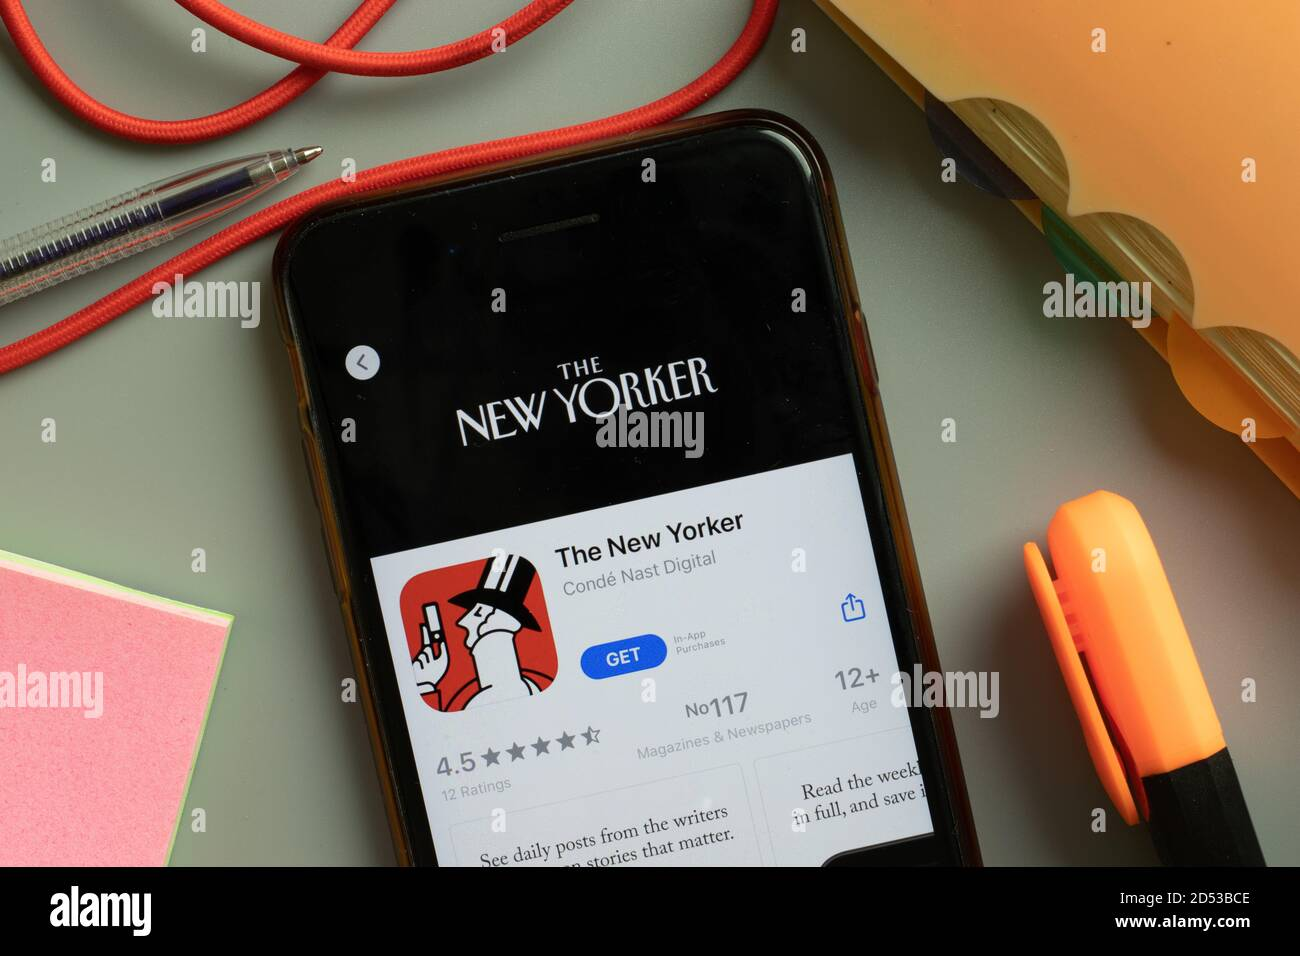 New York, USA - 29 September 2020: The New Yorker mobile app logo on phone screen close up, Illustrative Editorial Stock Photo